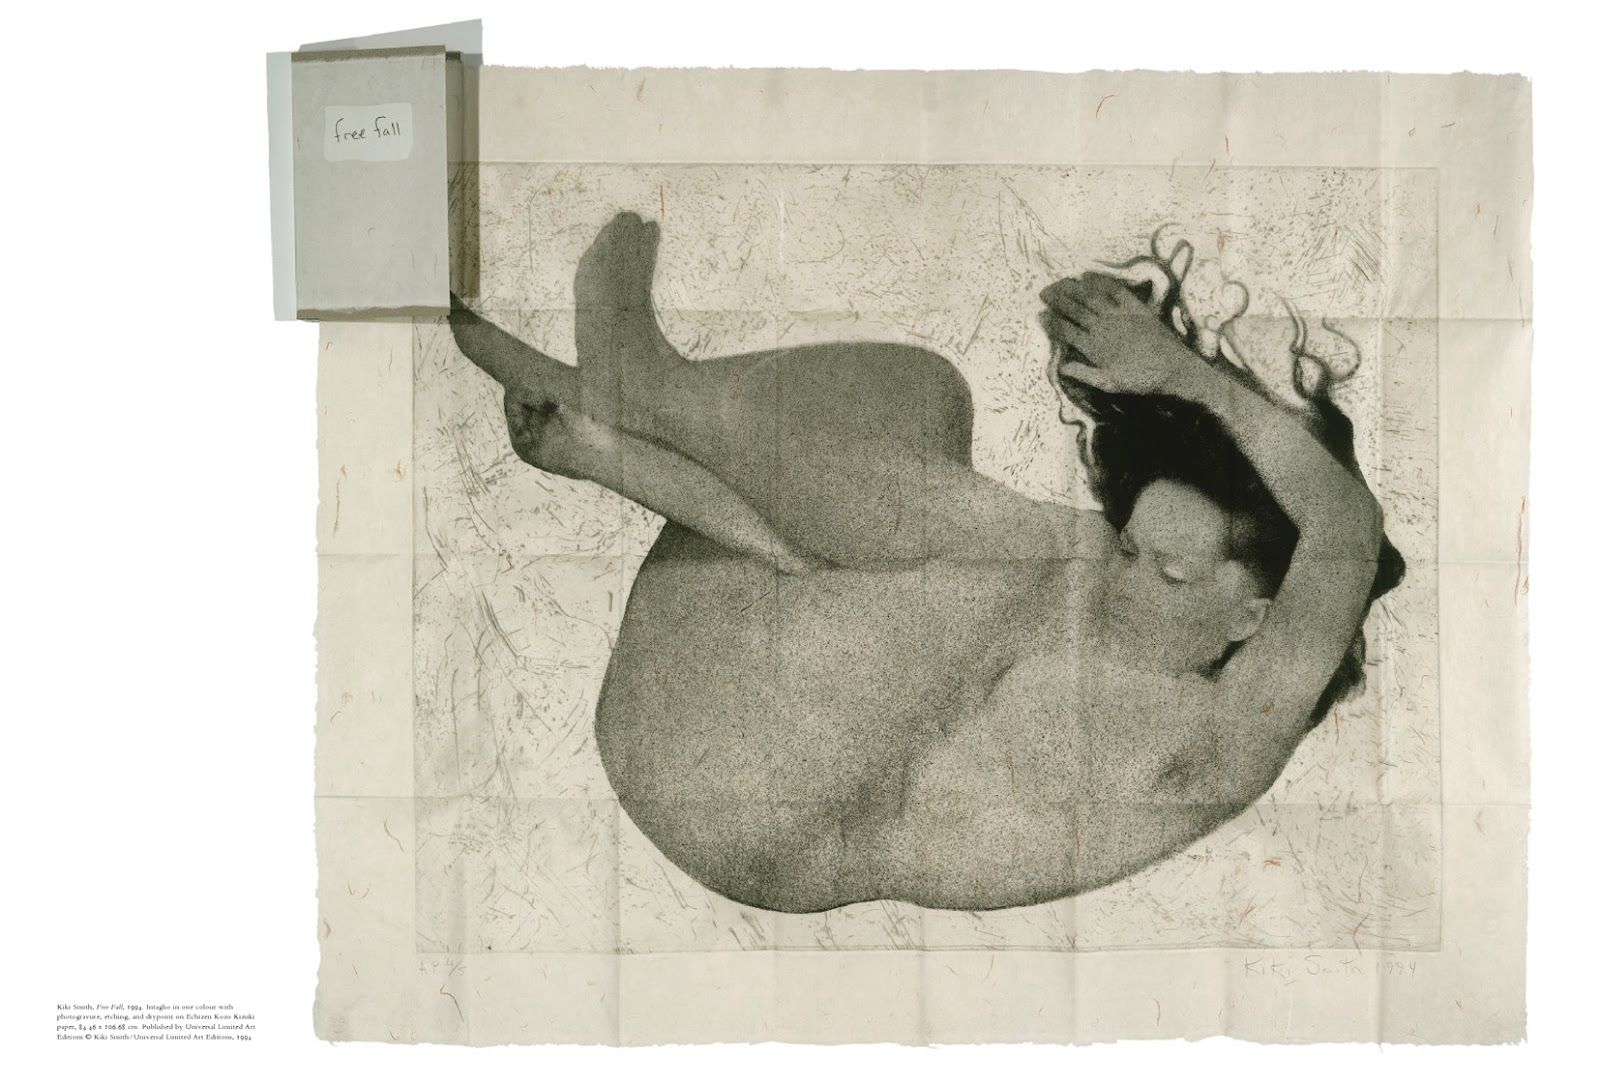 free fall kiki smith